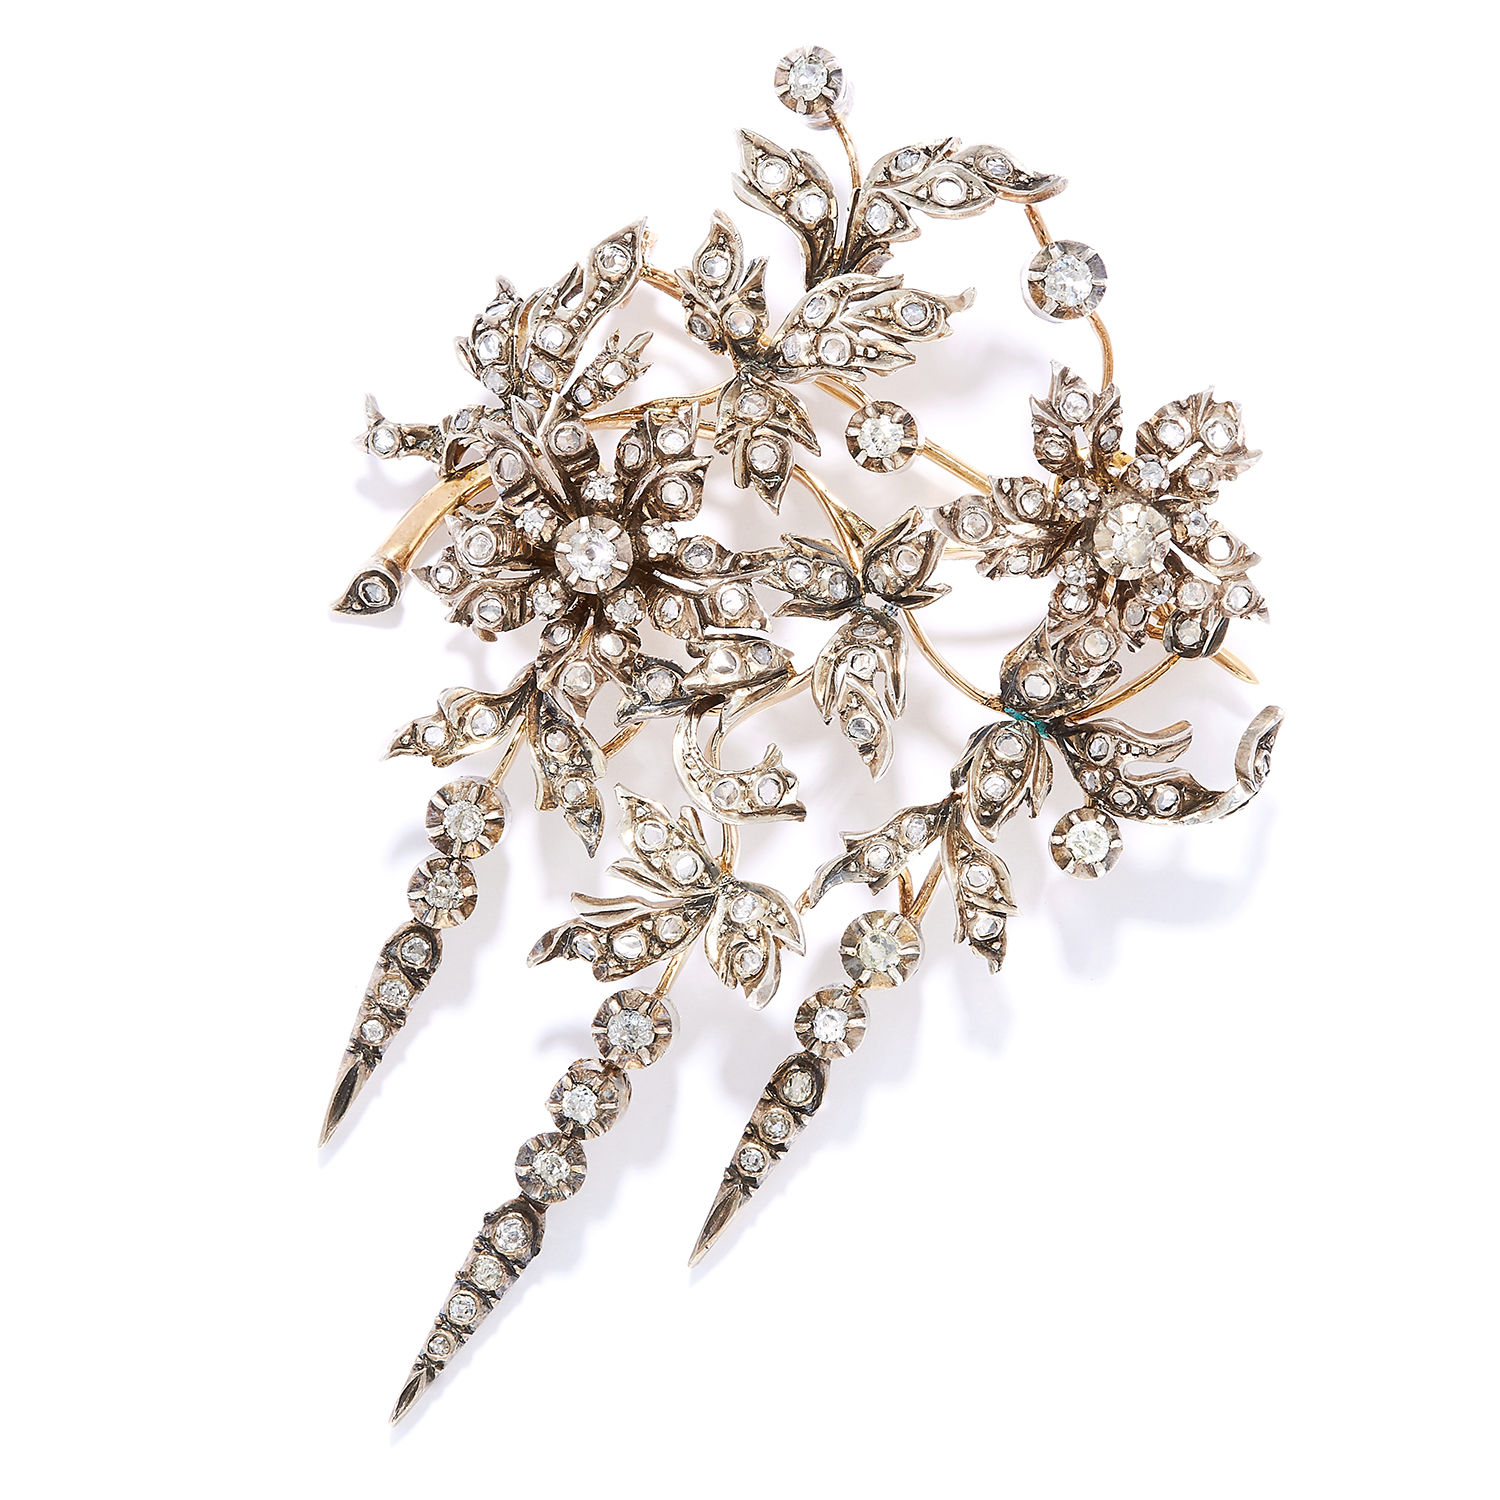 Los 29 - ANTIQUE DIAMOND EN TREMBLANT BROOCH in high carat yellow gold, in flower spray form, set with old